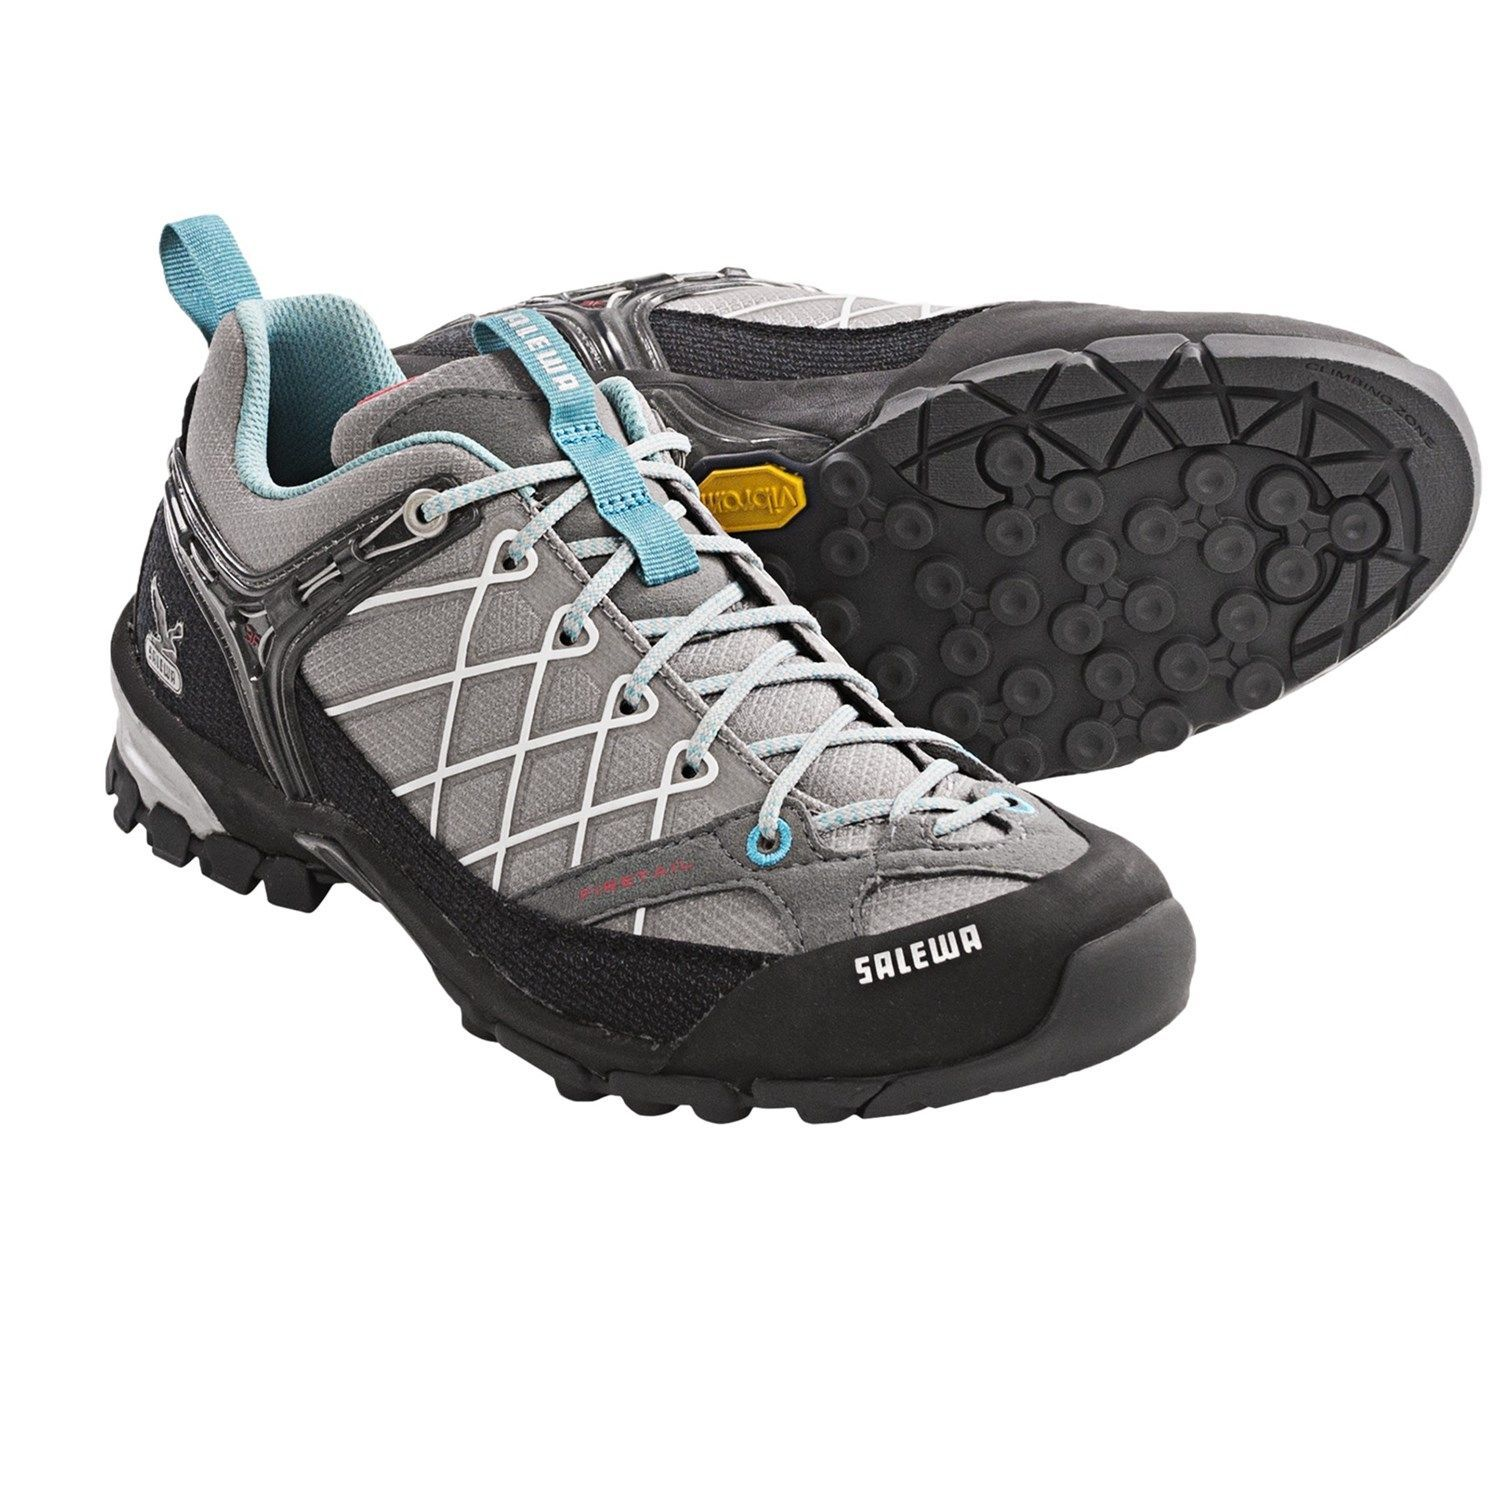 9f7df2a450350 salewa trekking shoes - Buscar con Google | Women's Outdoor Shoes in ...